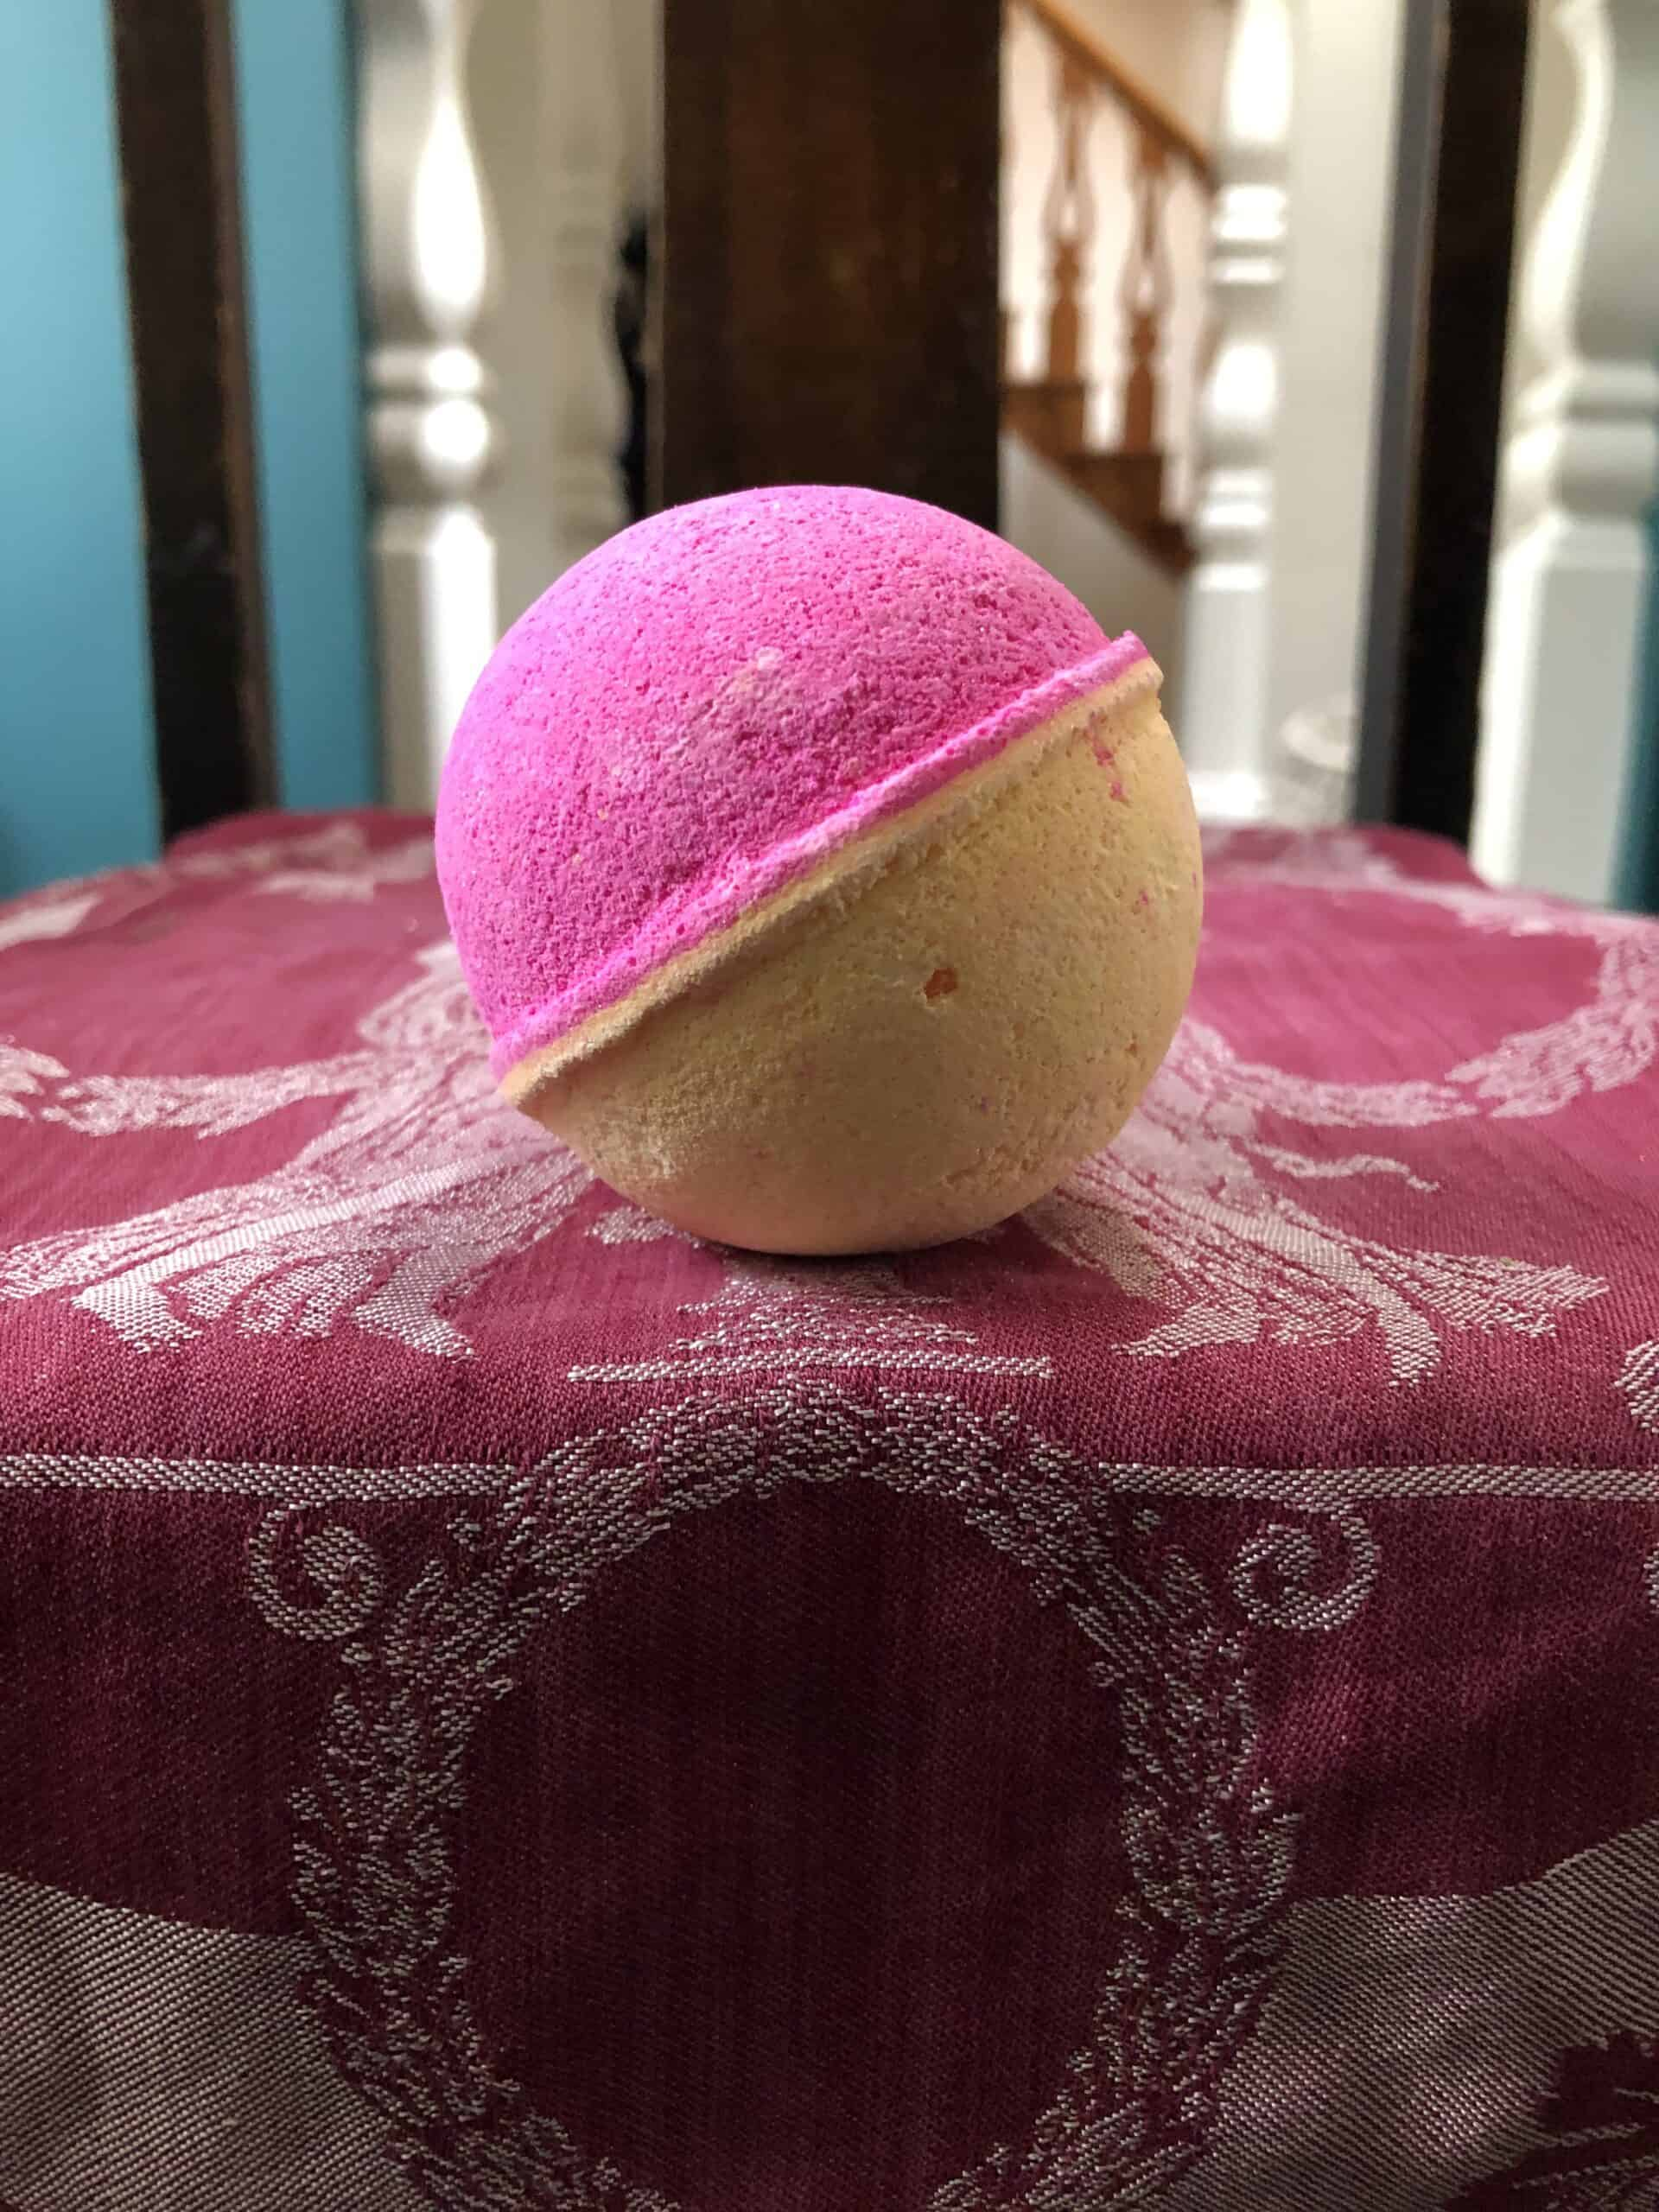 cbd for life pink salt and citrus bath bomb save on cannabis review testing process